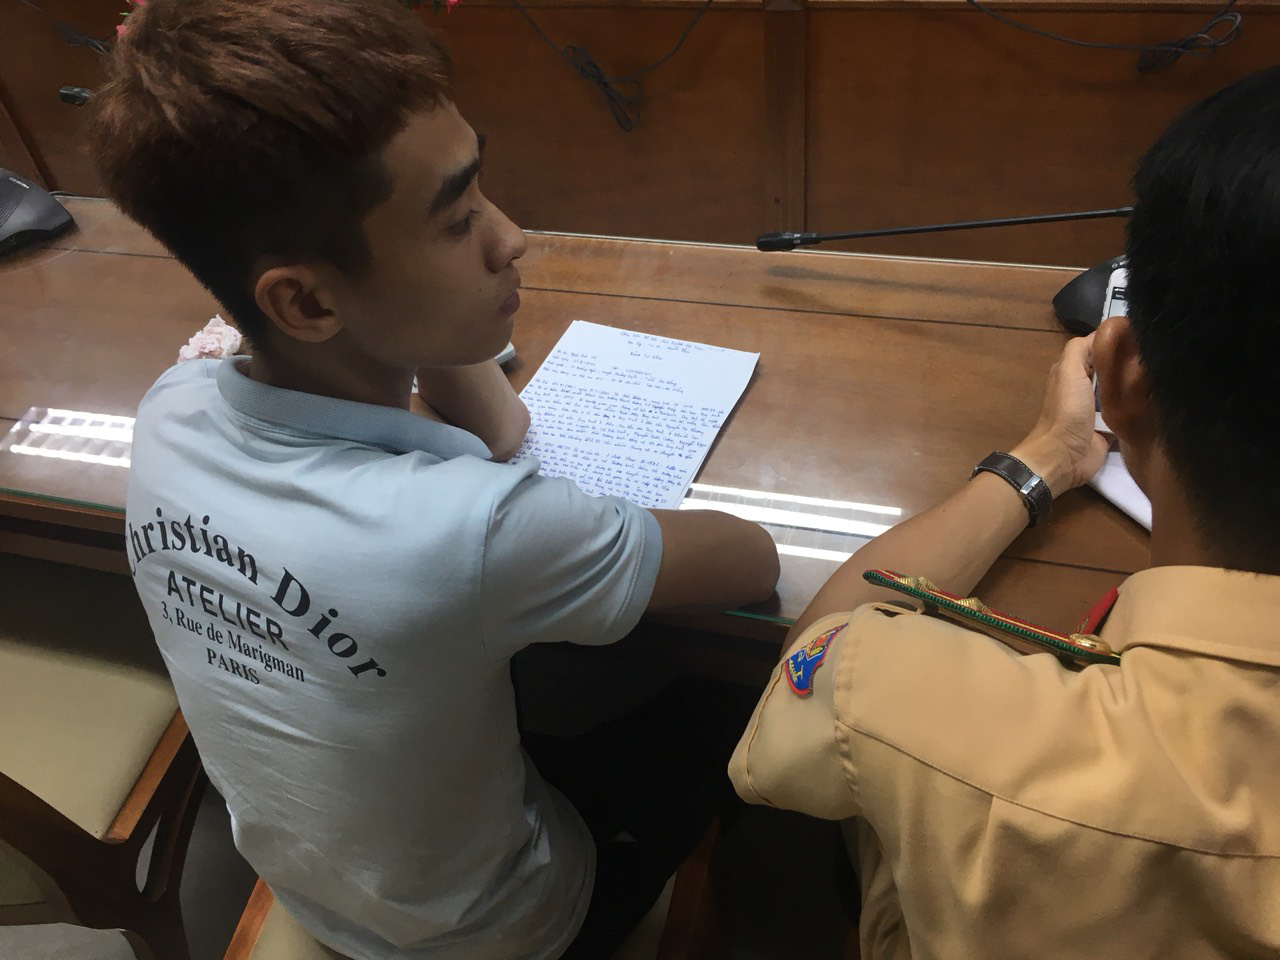 Man summoned by Da Nang police after viral clip of reckless driving